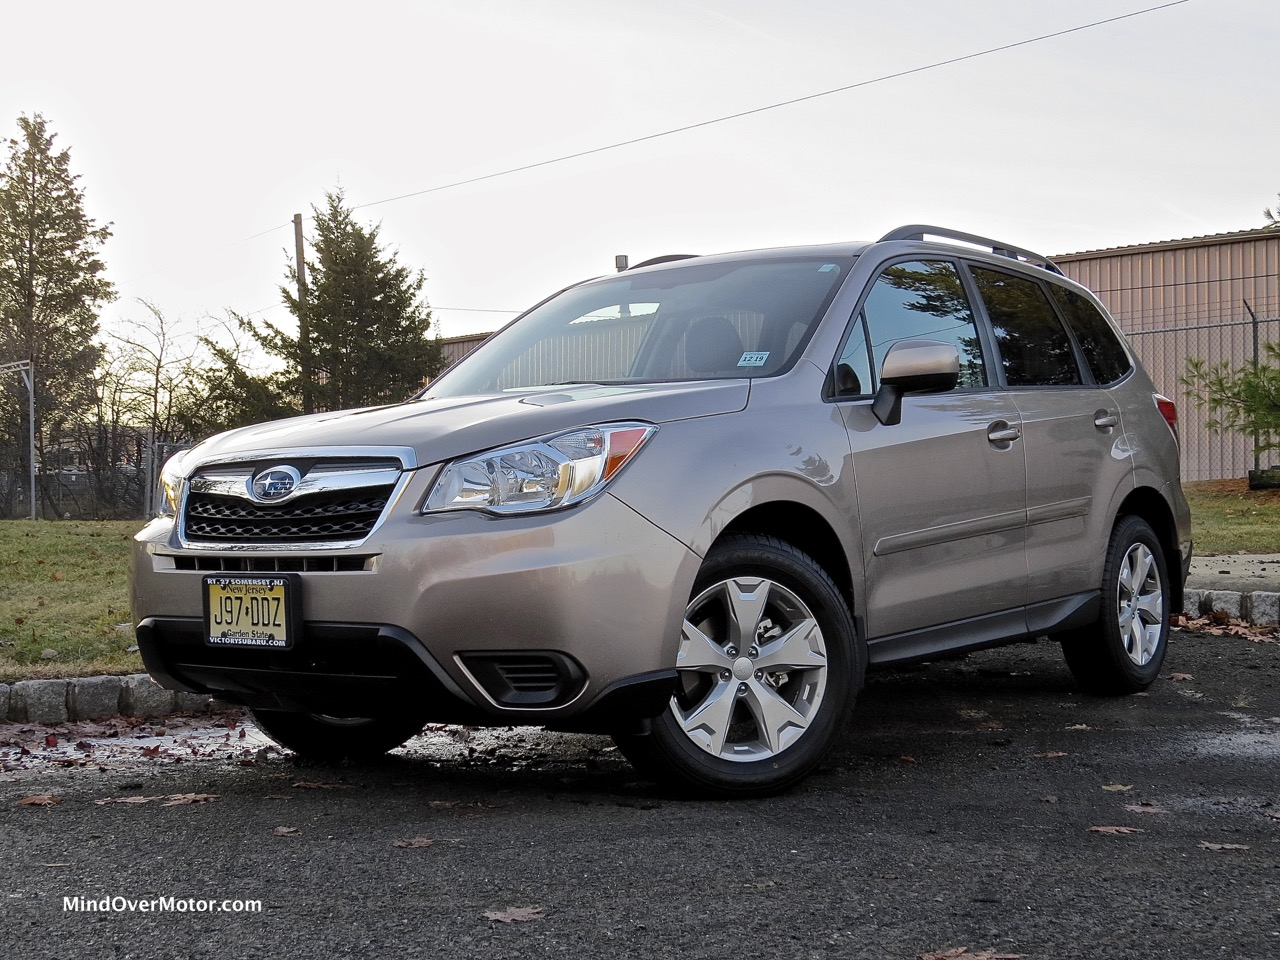 2015 Subaru Forester Front Angle